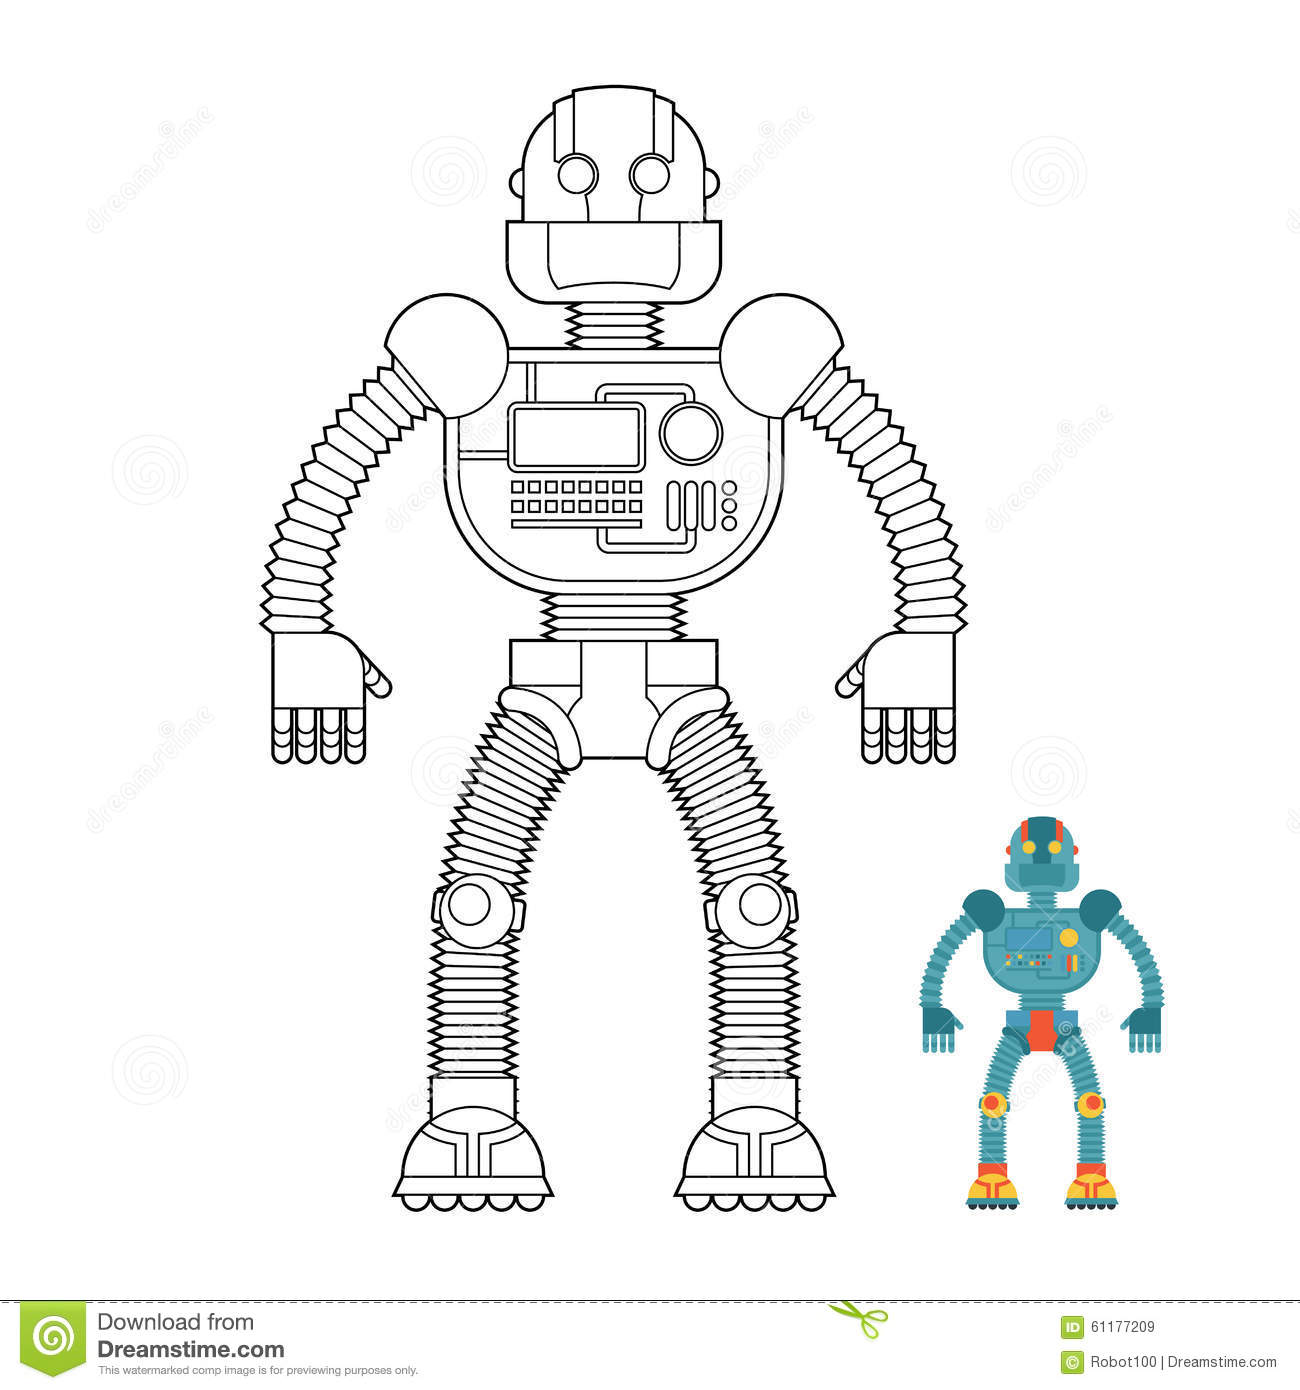 robot coloring book cyborg technological machine humanoid ma